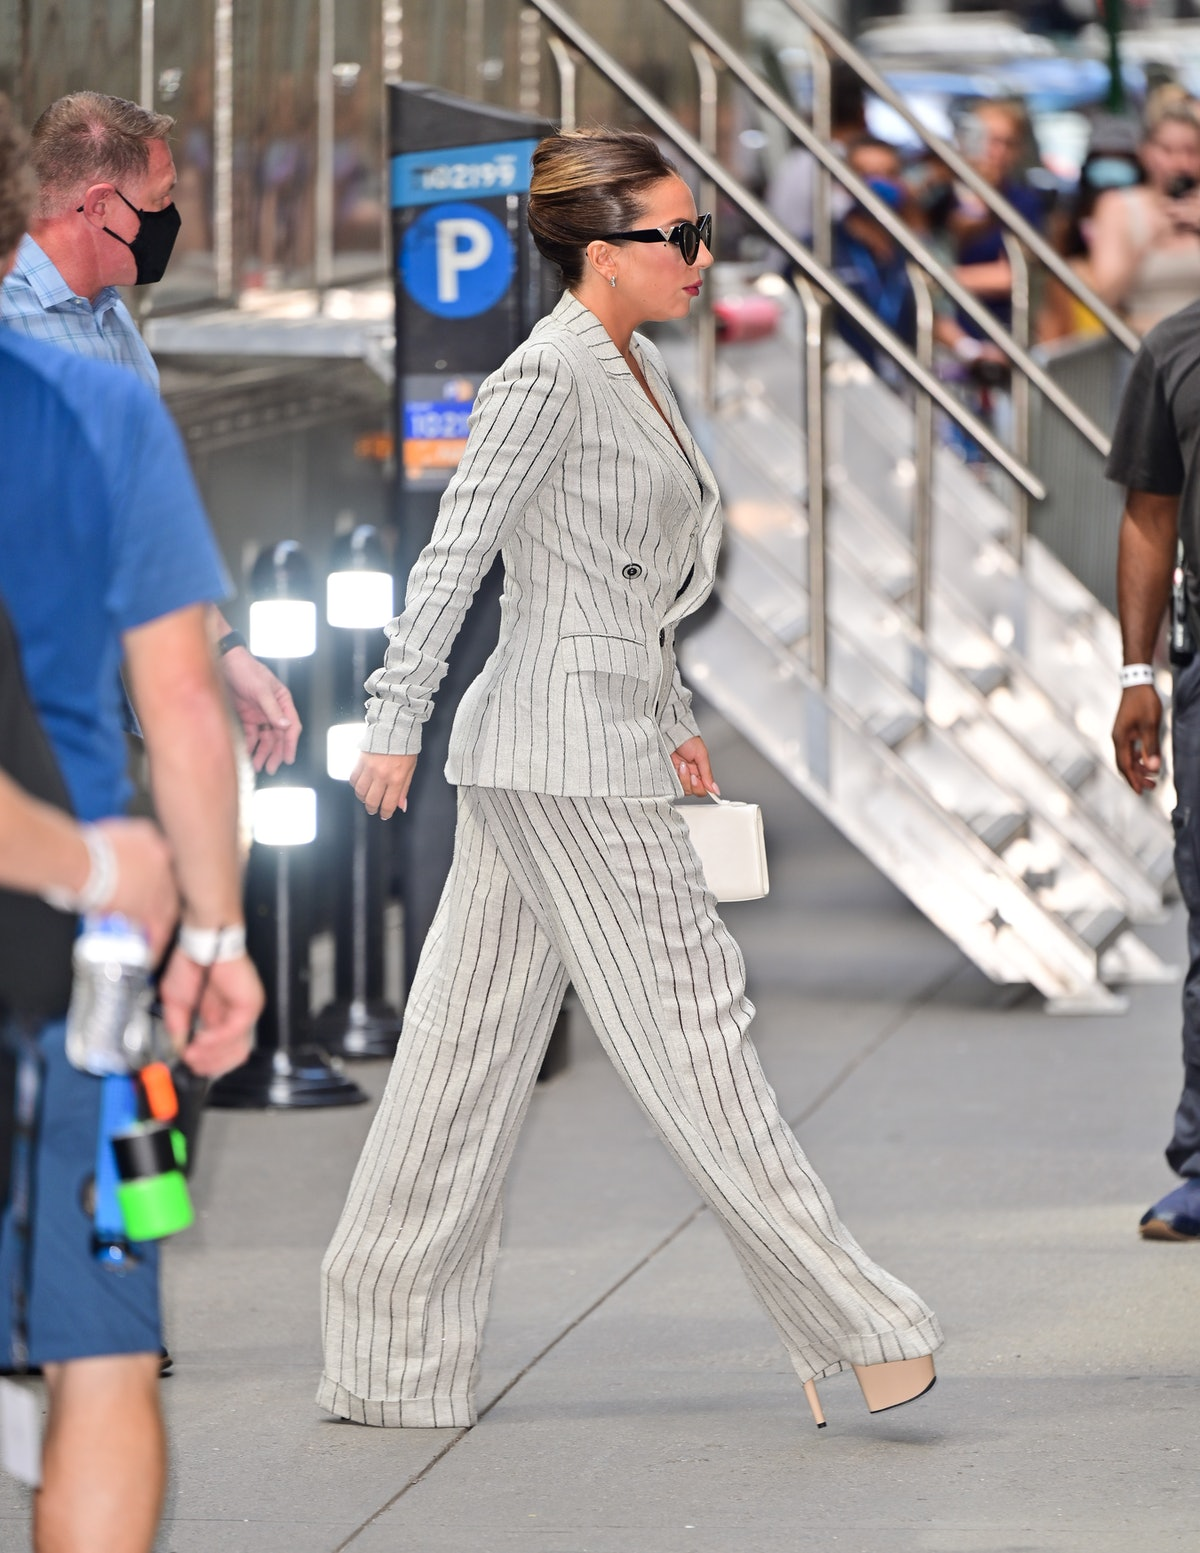 Lady Gaga seen on the streets of Manhattan on August 02, 2021 in New York City.